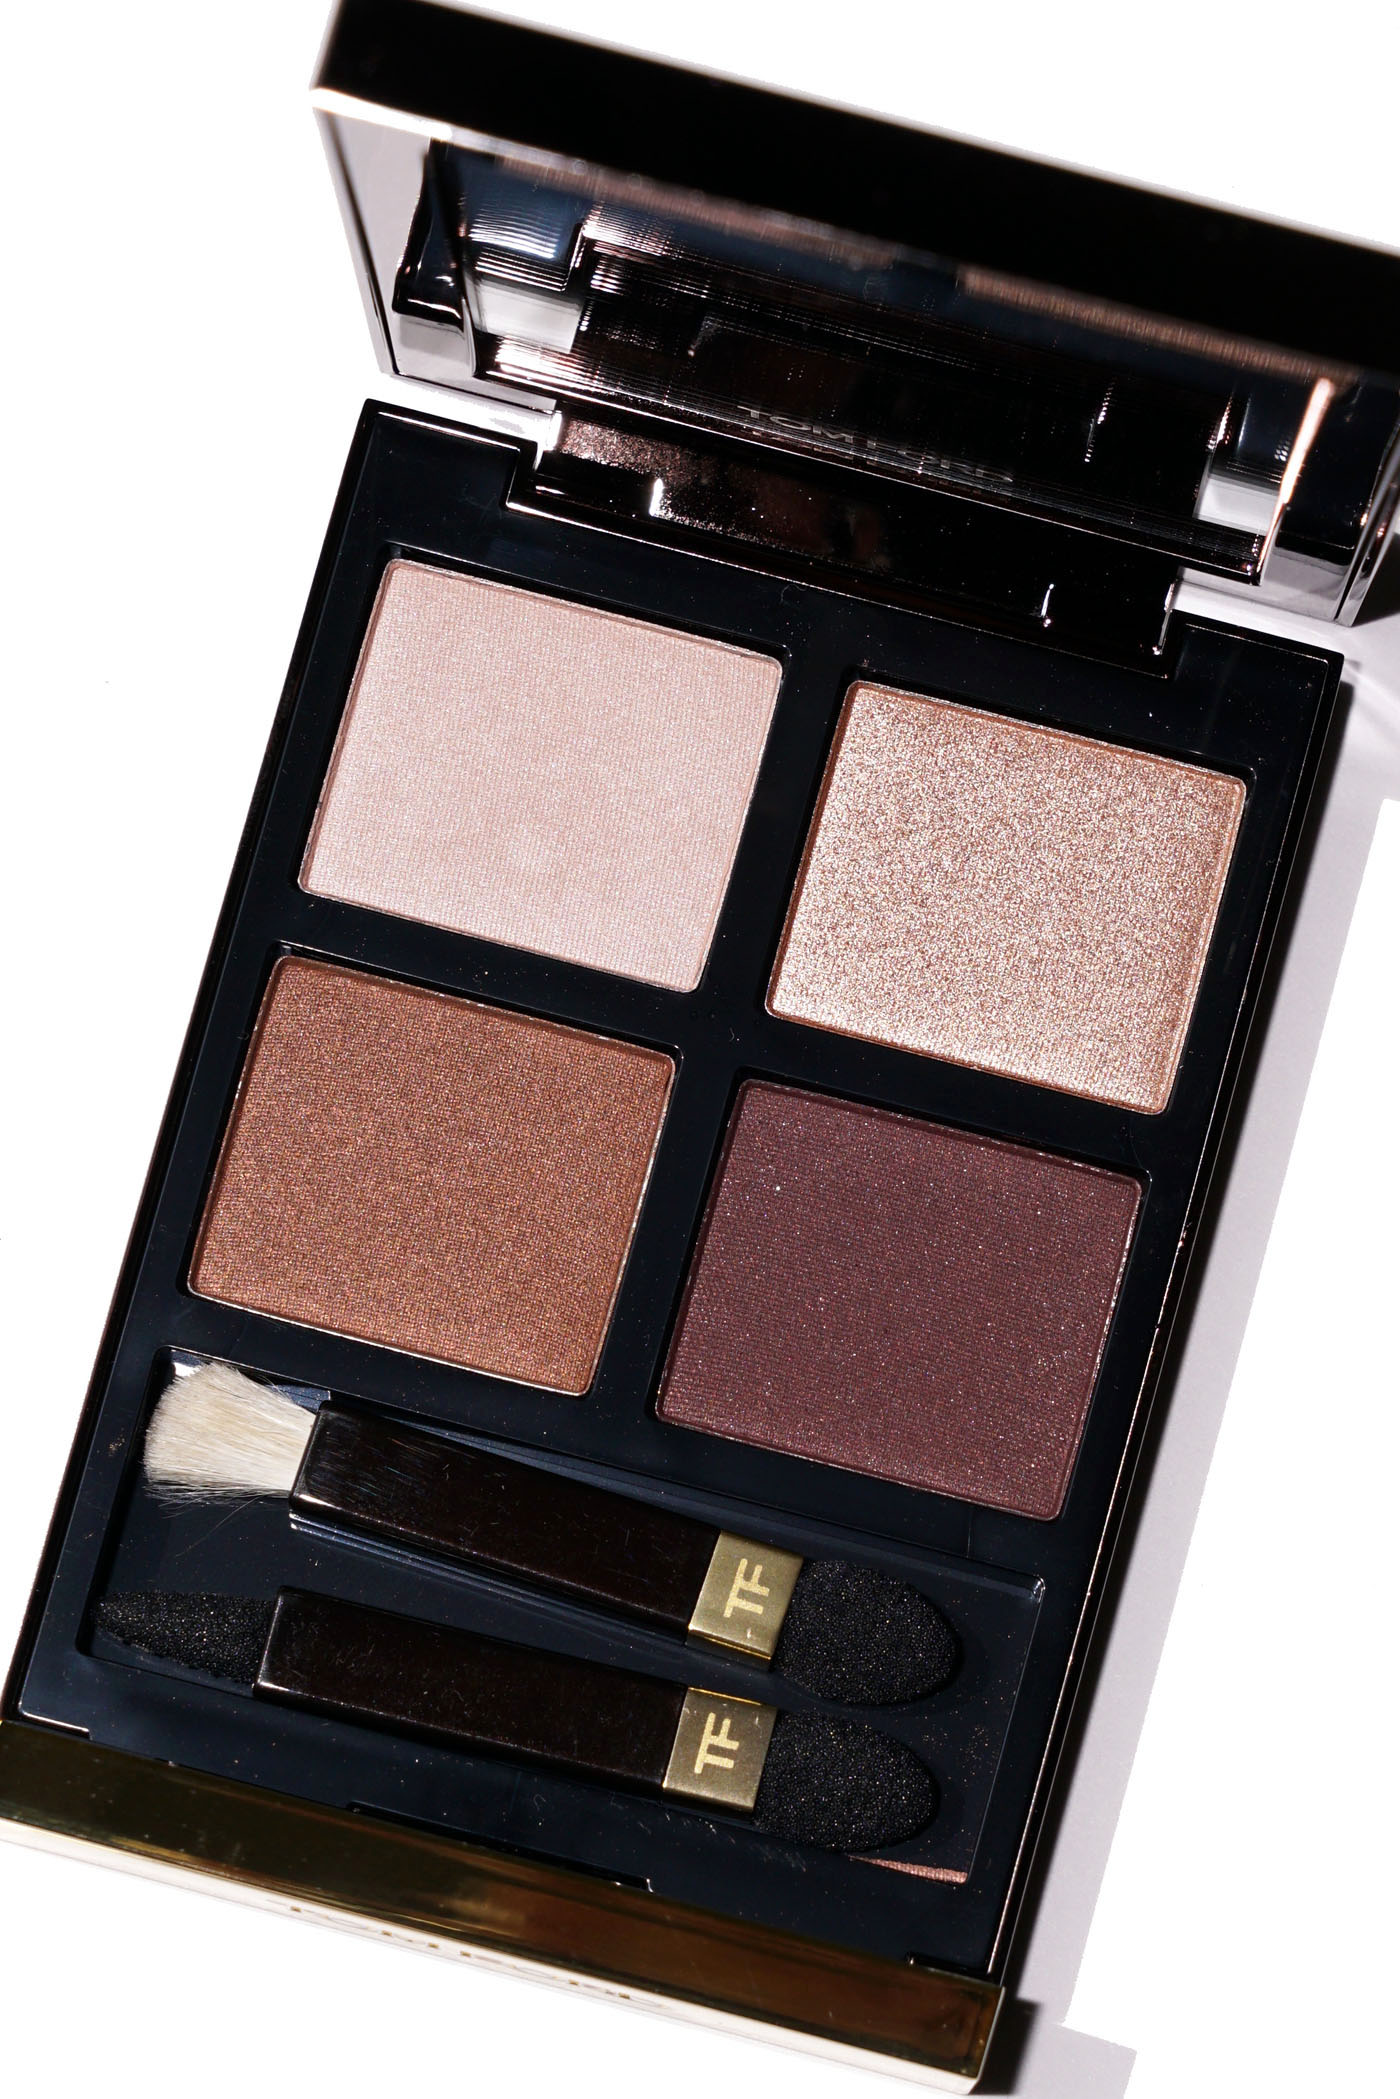 Tom Ford iris Bronze Eyeshadow Quad Review | The Beauty Look Book